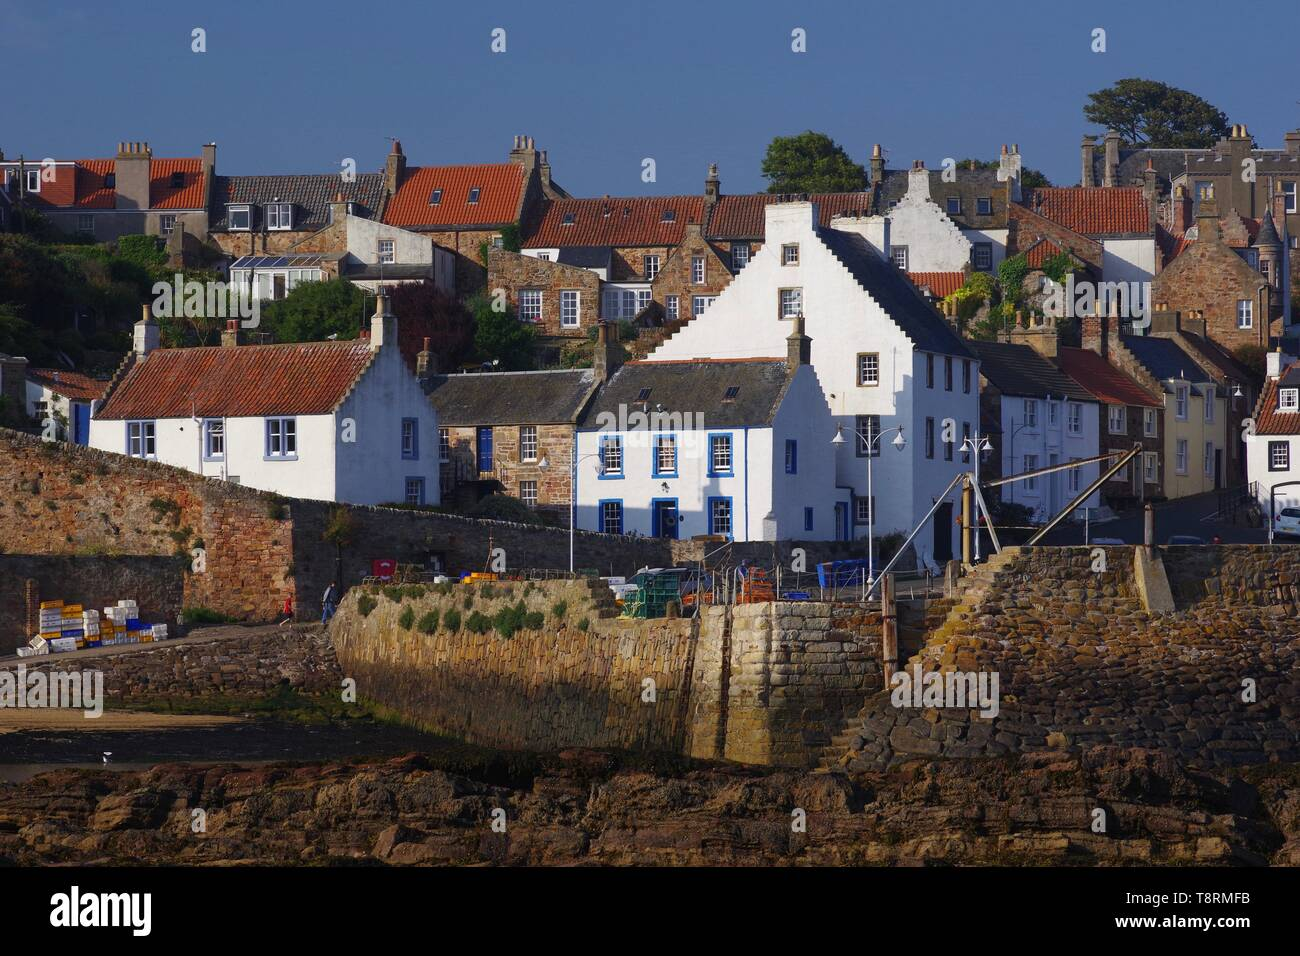 Crail Harbour and Cottages of the Fishing Village on a Summers Day. Fife, Scotland, UK. - Stock Image